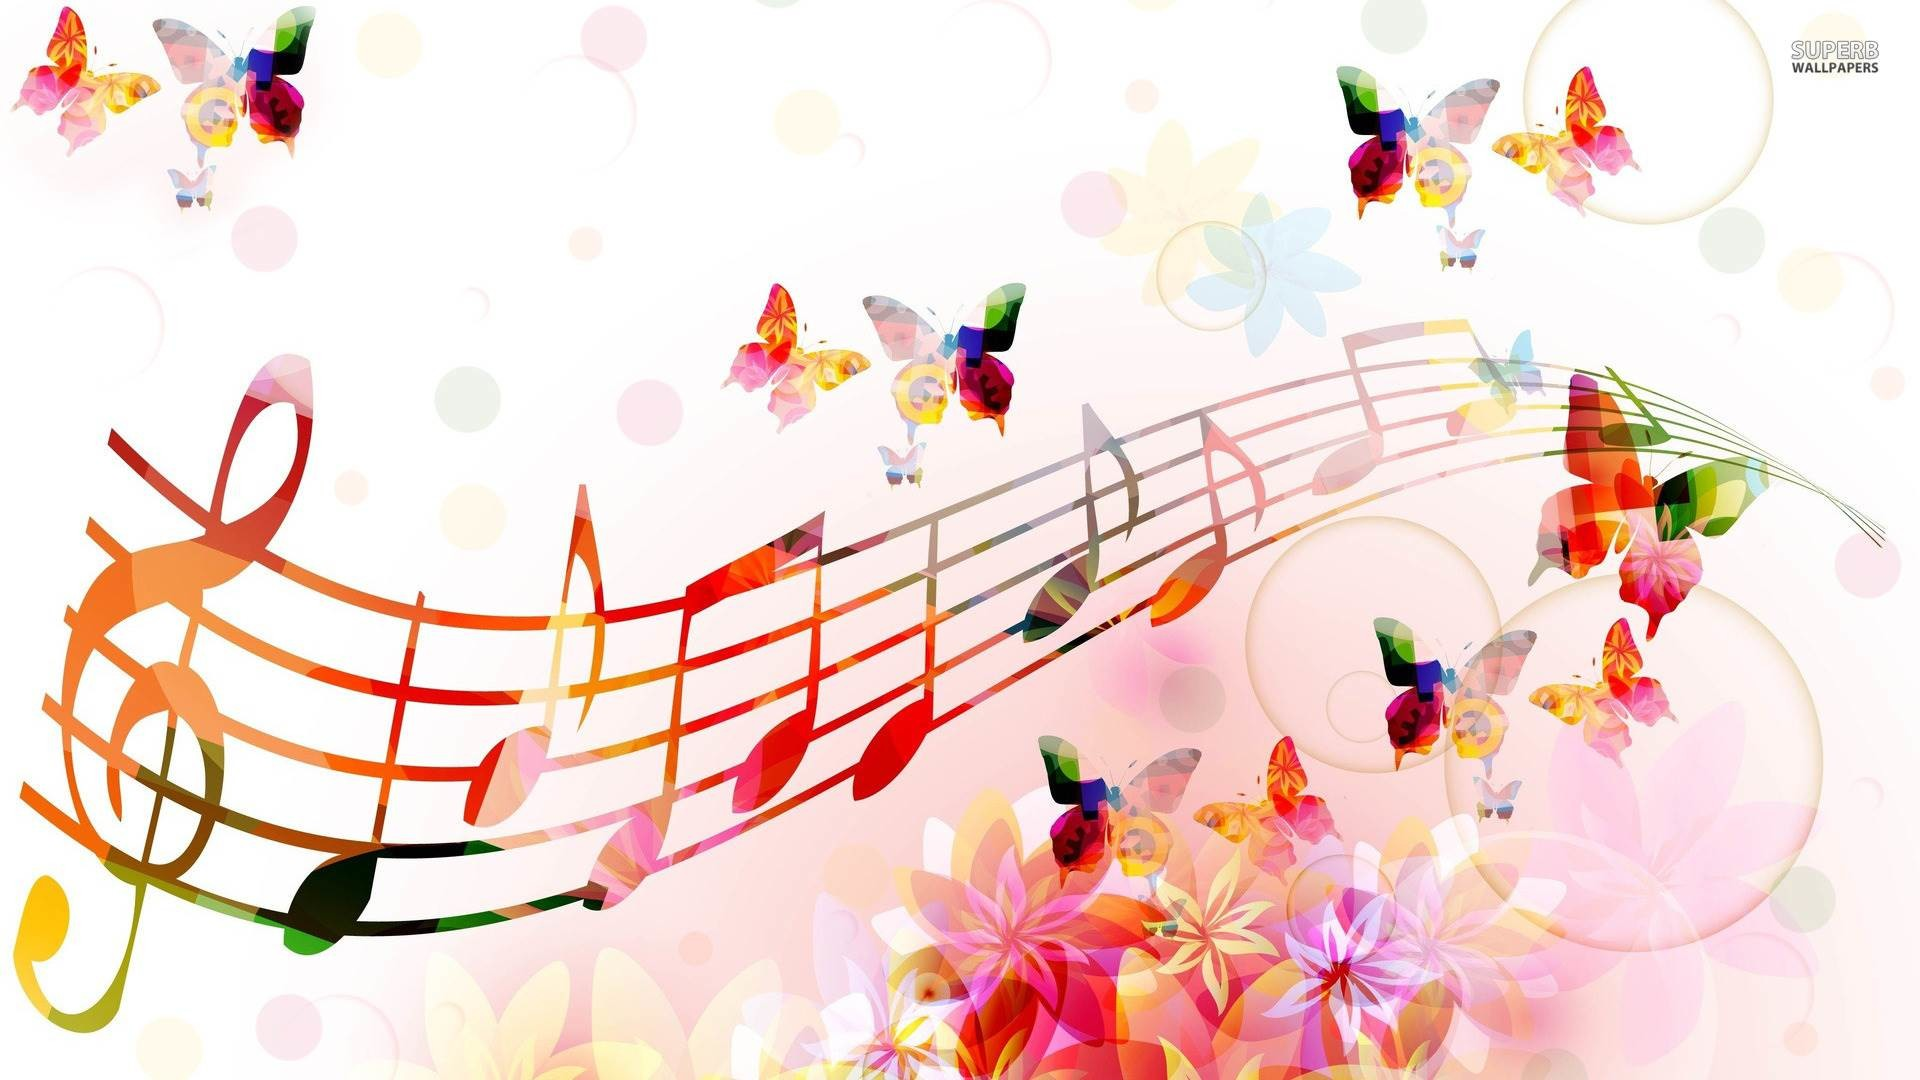 Music Wallpapers p HD Pictures One HD Wallpaper Pictures 1920×1080 Wallpapers  Music | Adorable